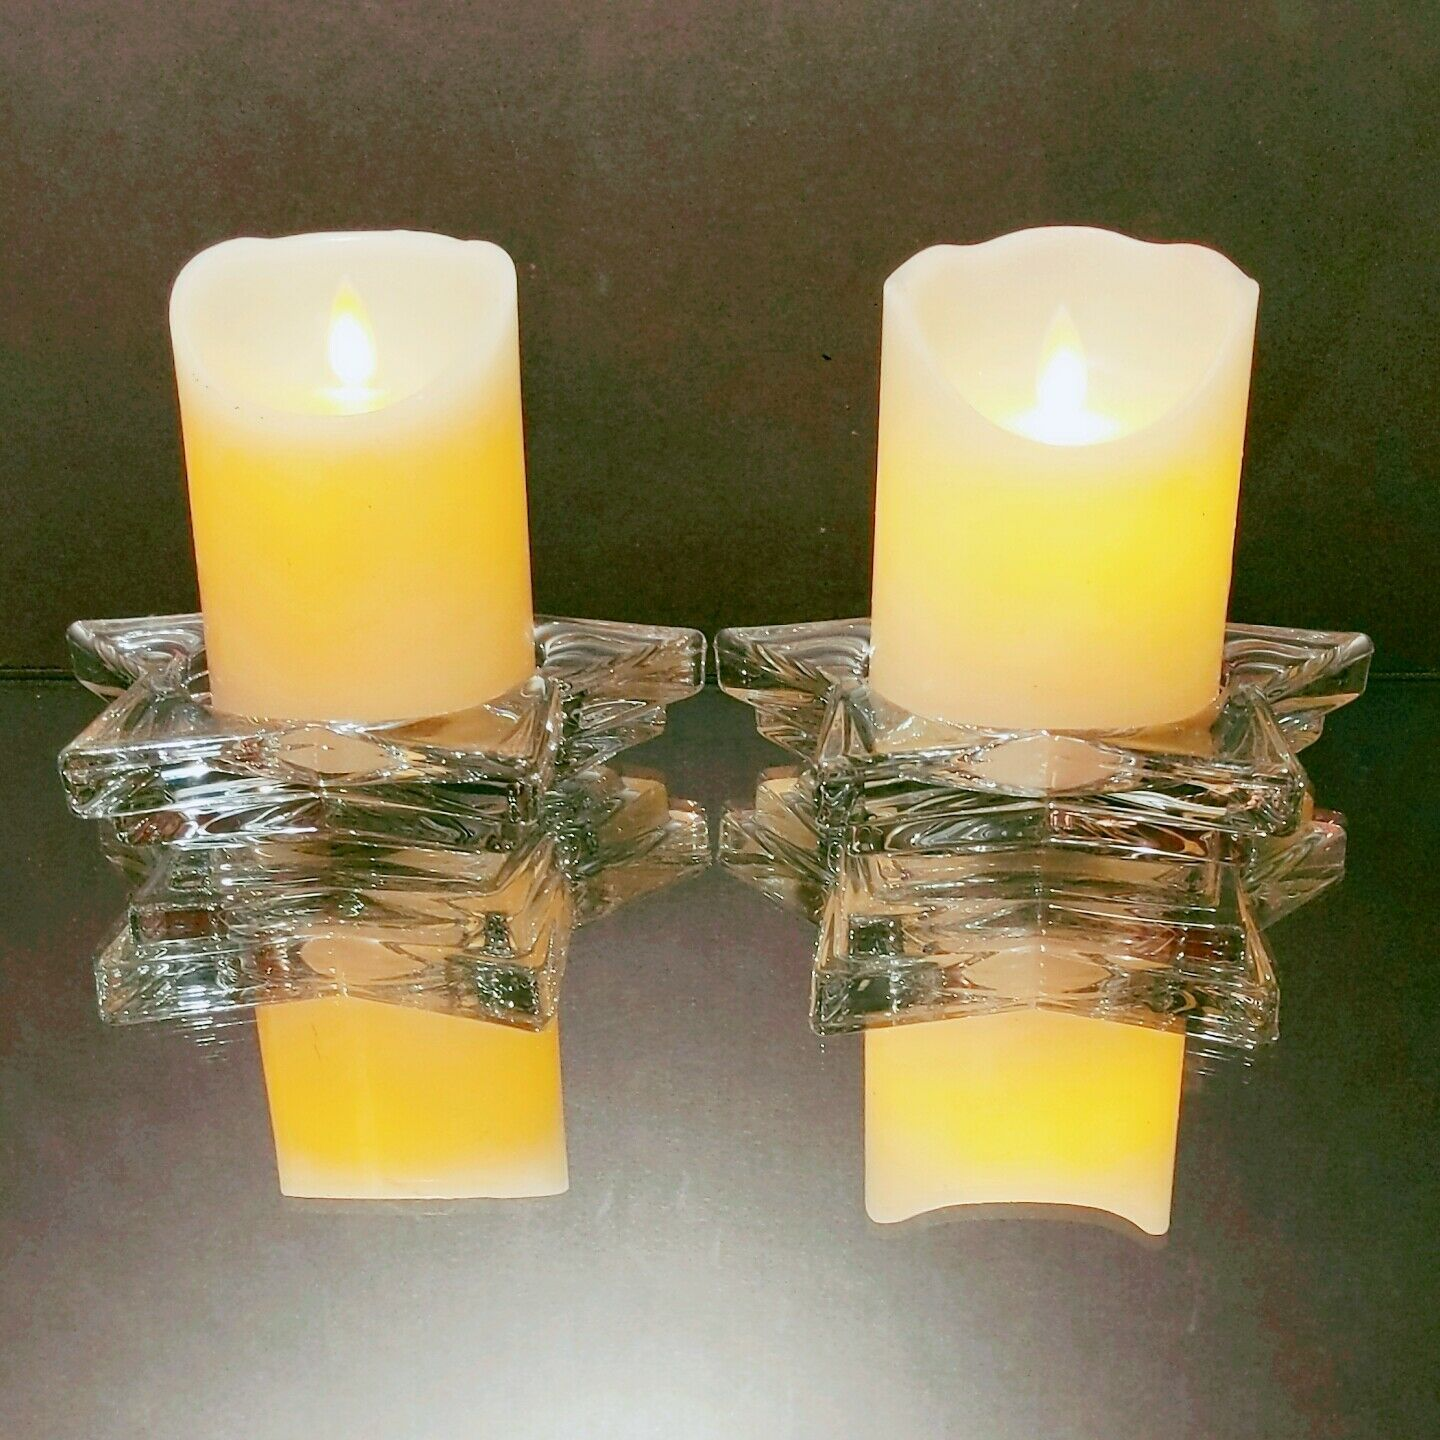 2 (Two) HOME INTERIORS Lead Crystal Pentacle Star Candle Base